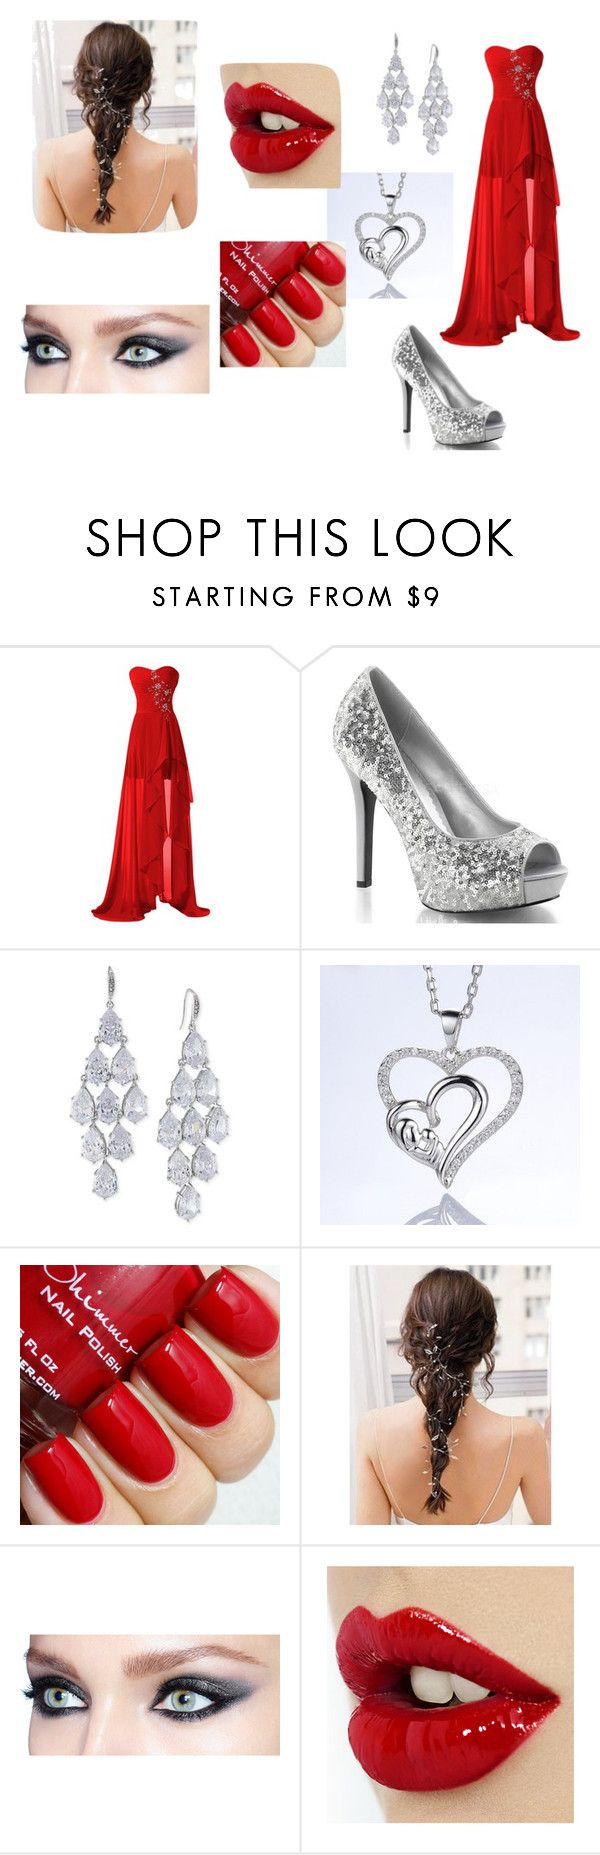 Red Prom by jill-nicole-1 on Polyvore featuring Carolee